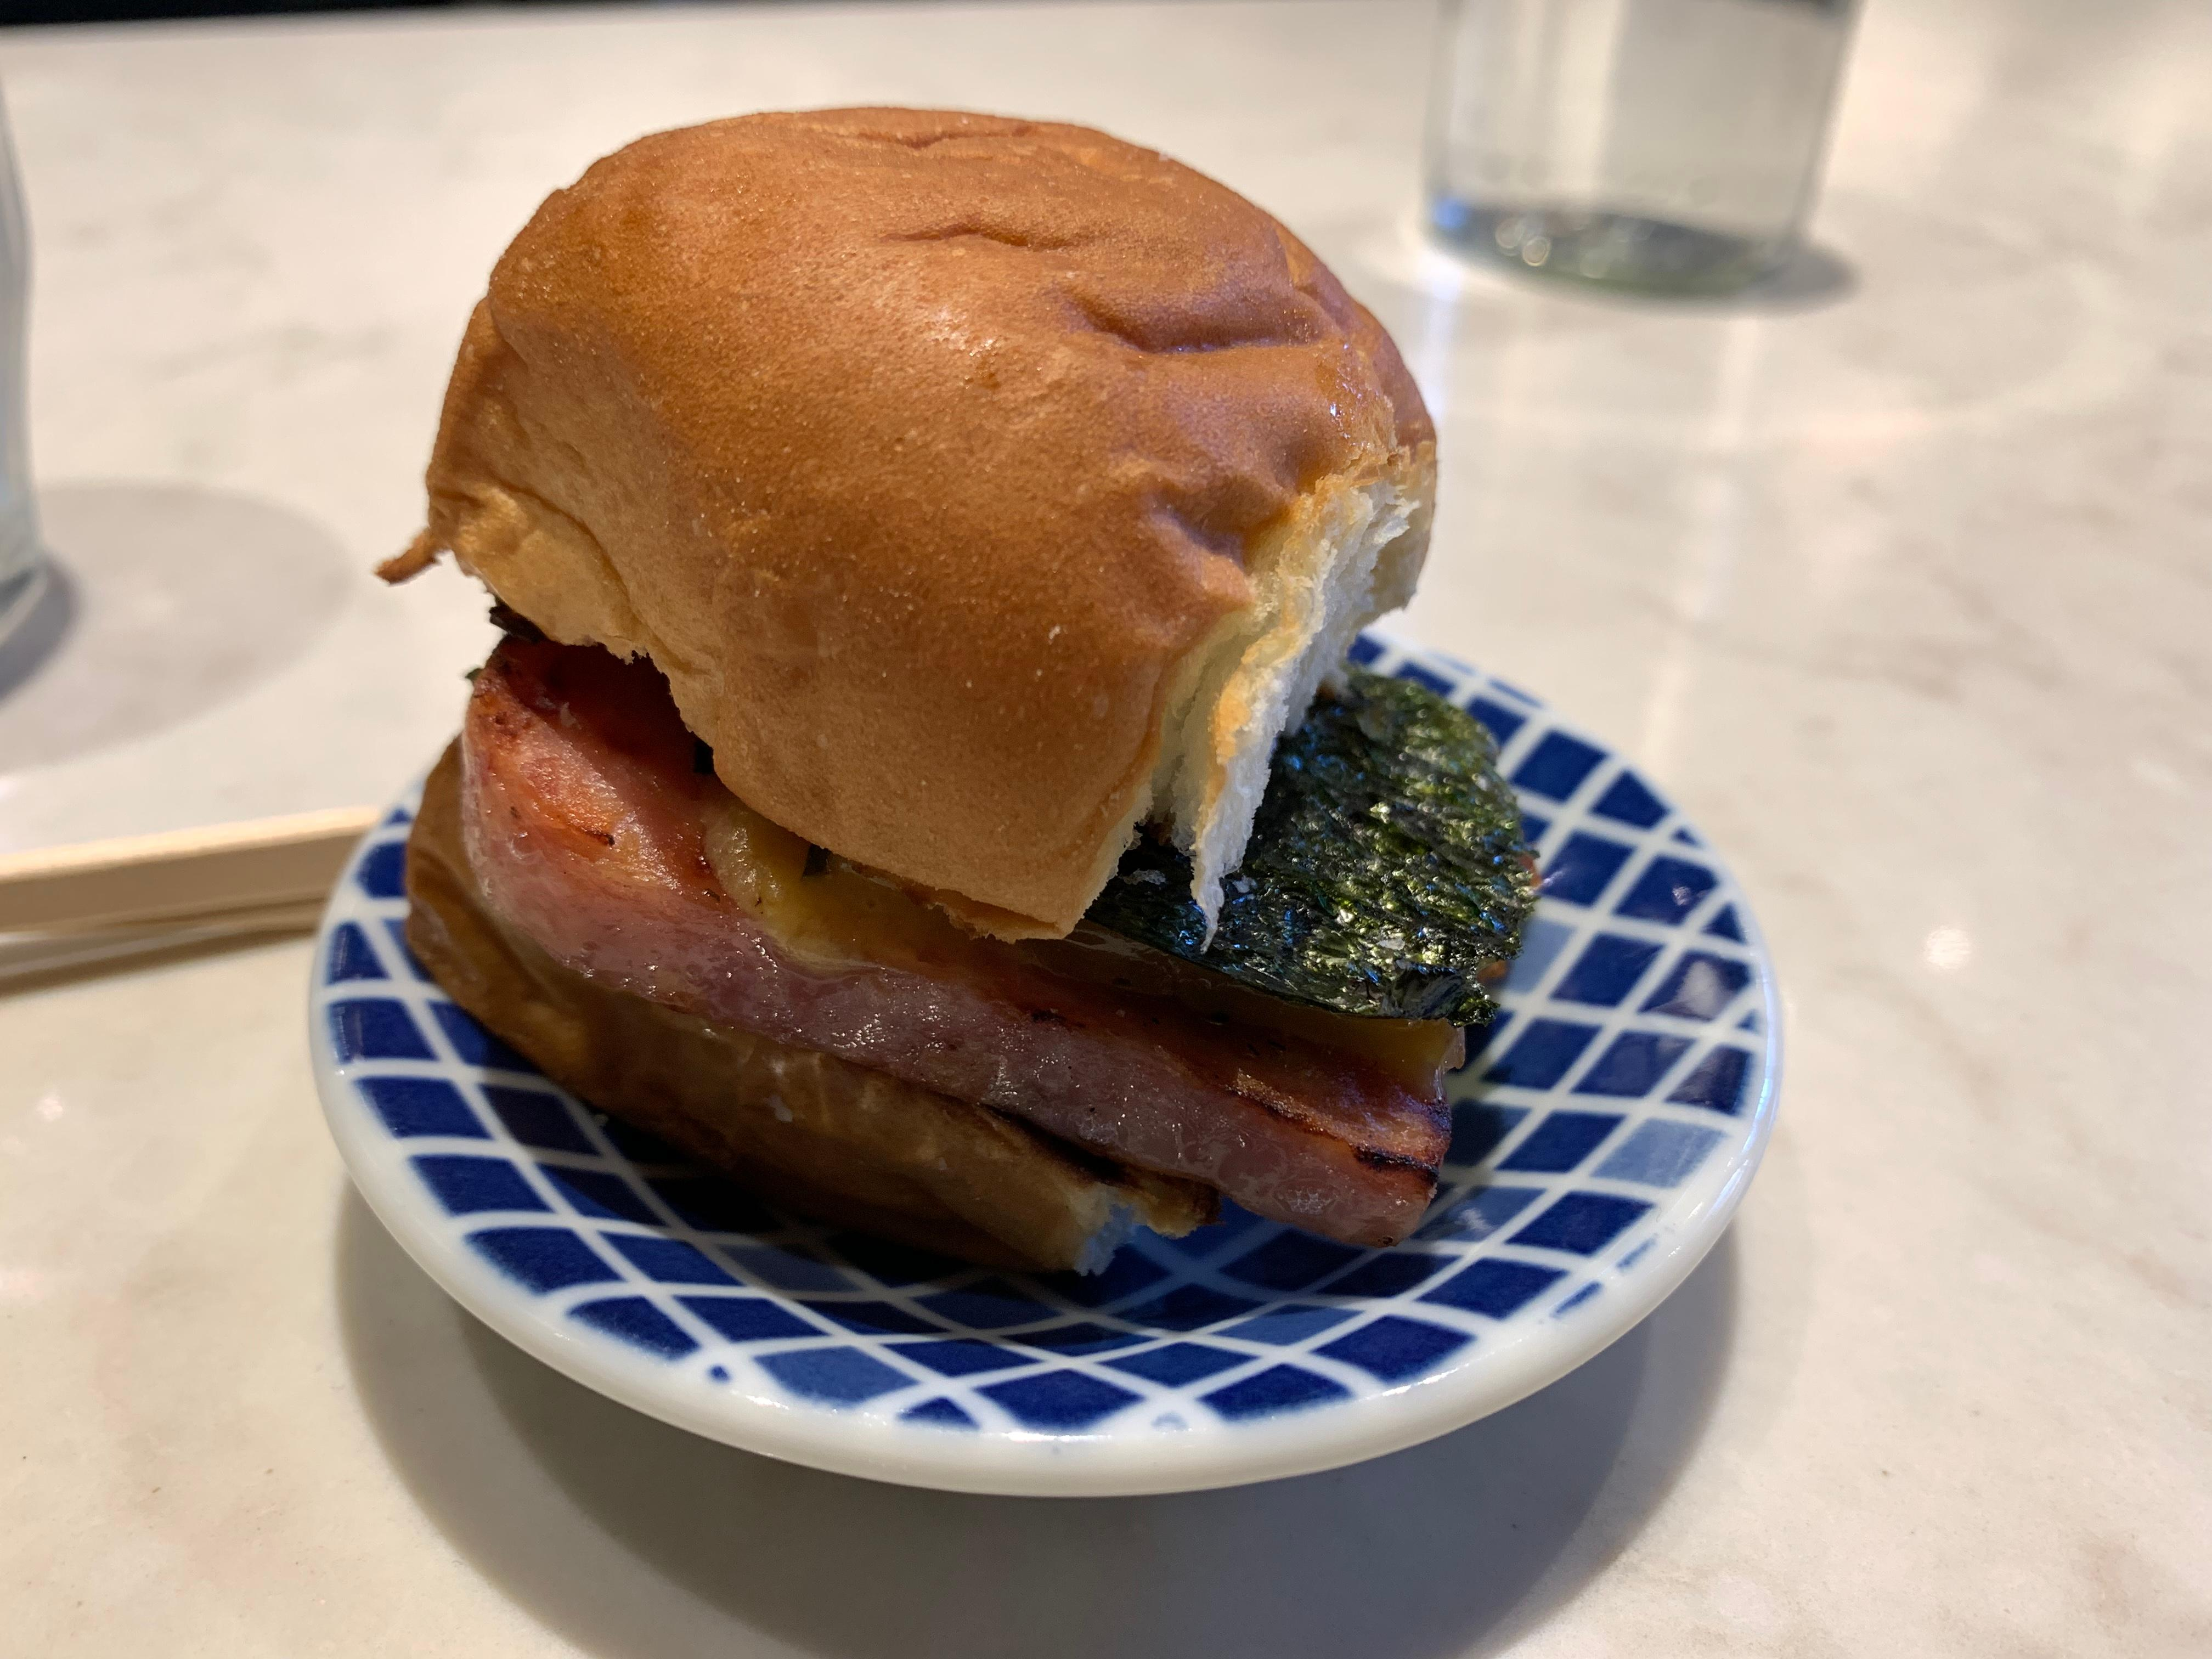 The finale for one of our lunches at By Tae; Spam sliders with Tillamook cheddar, kewpie mayo, and furikake on a King's Hawaiian roll. Pow.{ } (Image: Frank Guanco)